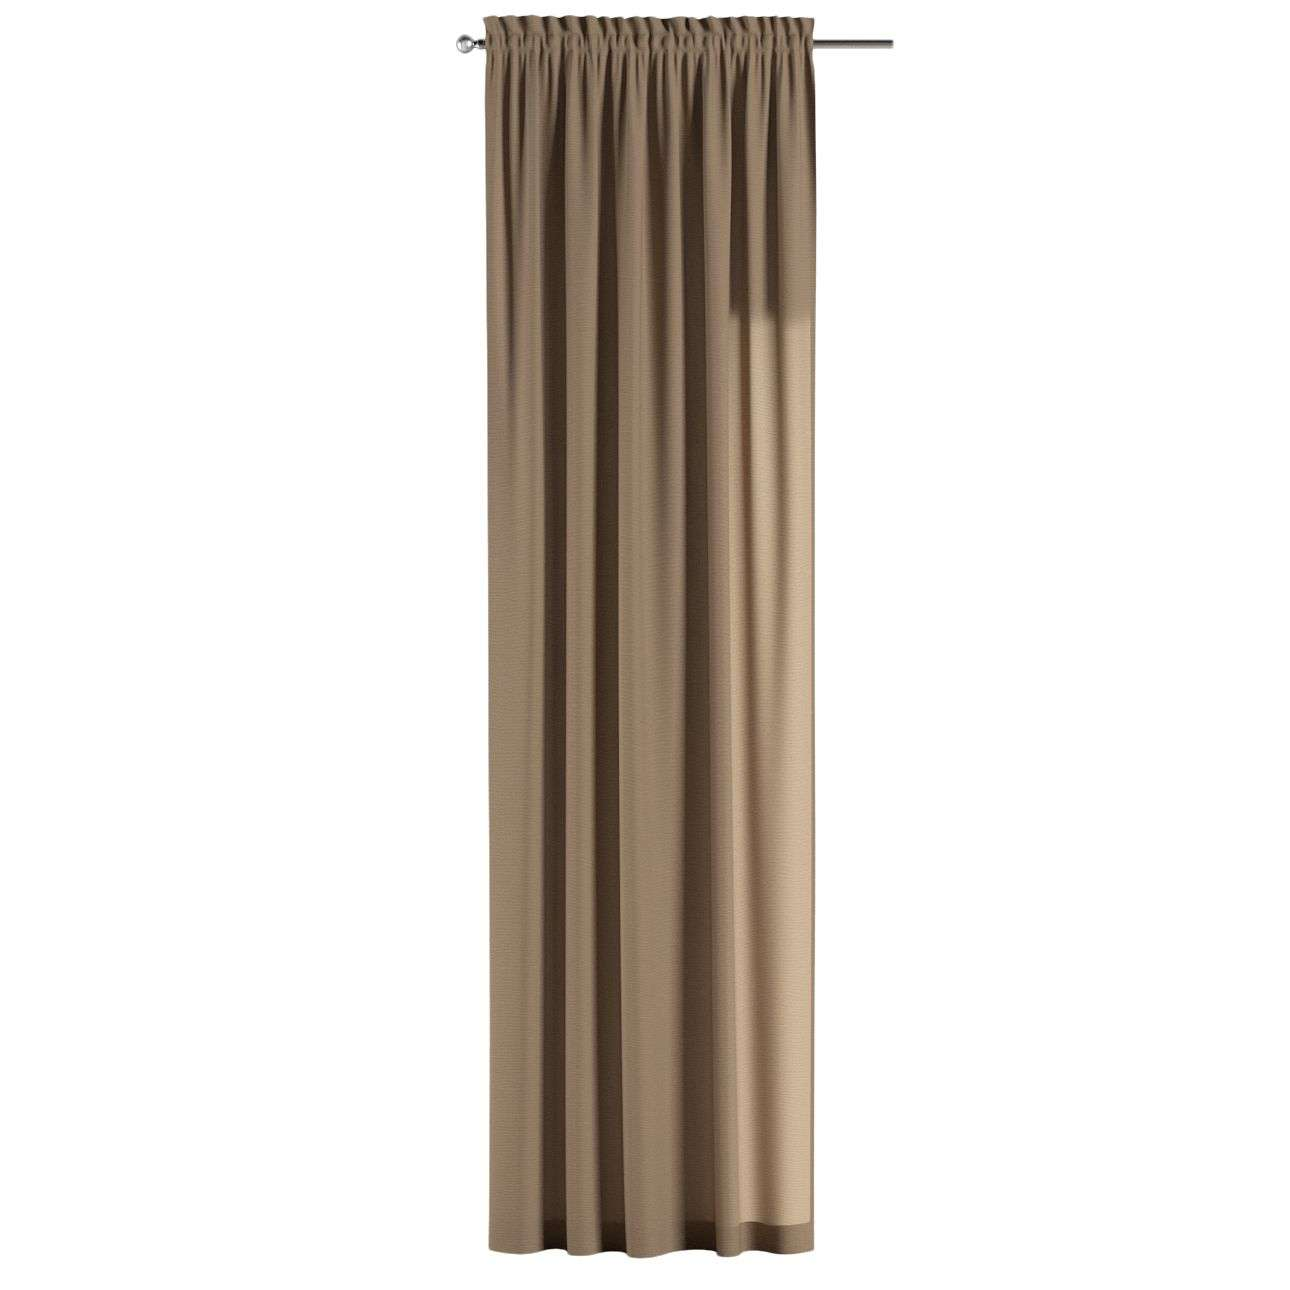 Slot and frill curtains in collection Quadro, fabric: 136-09